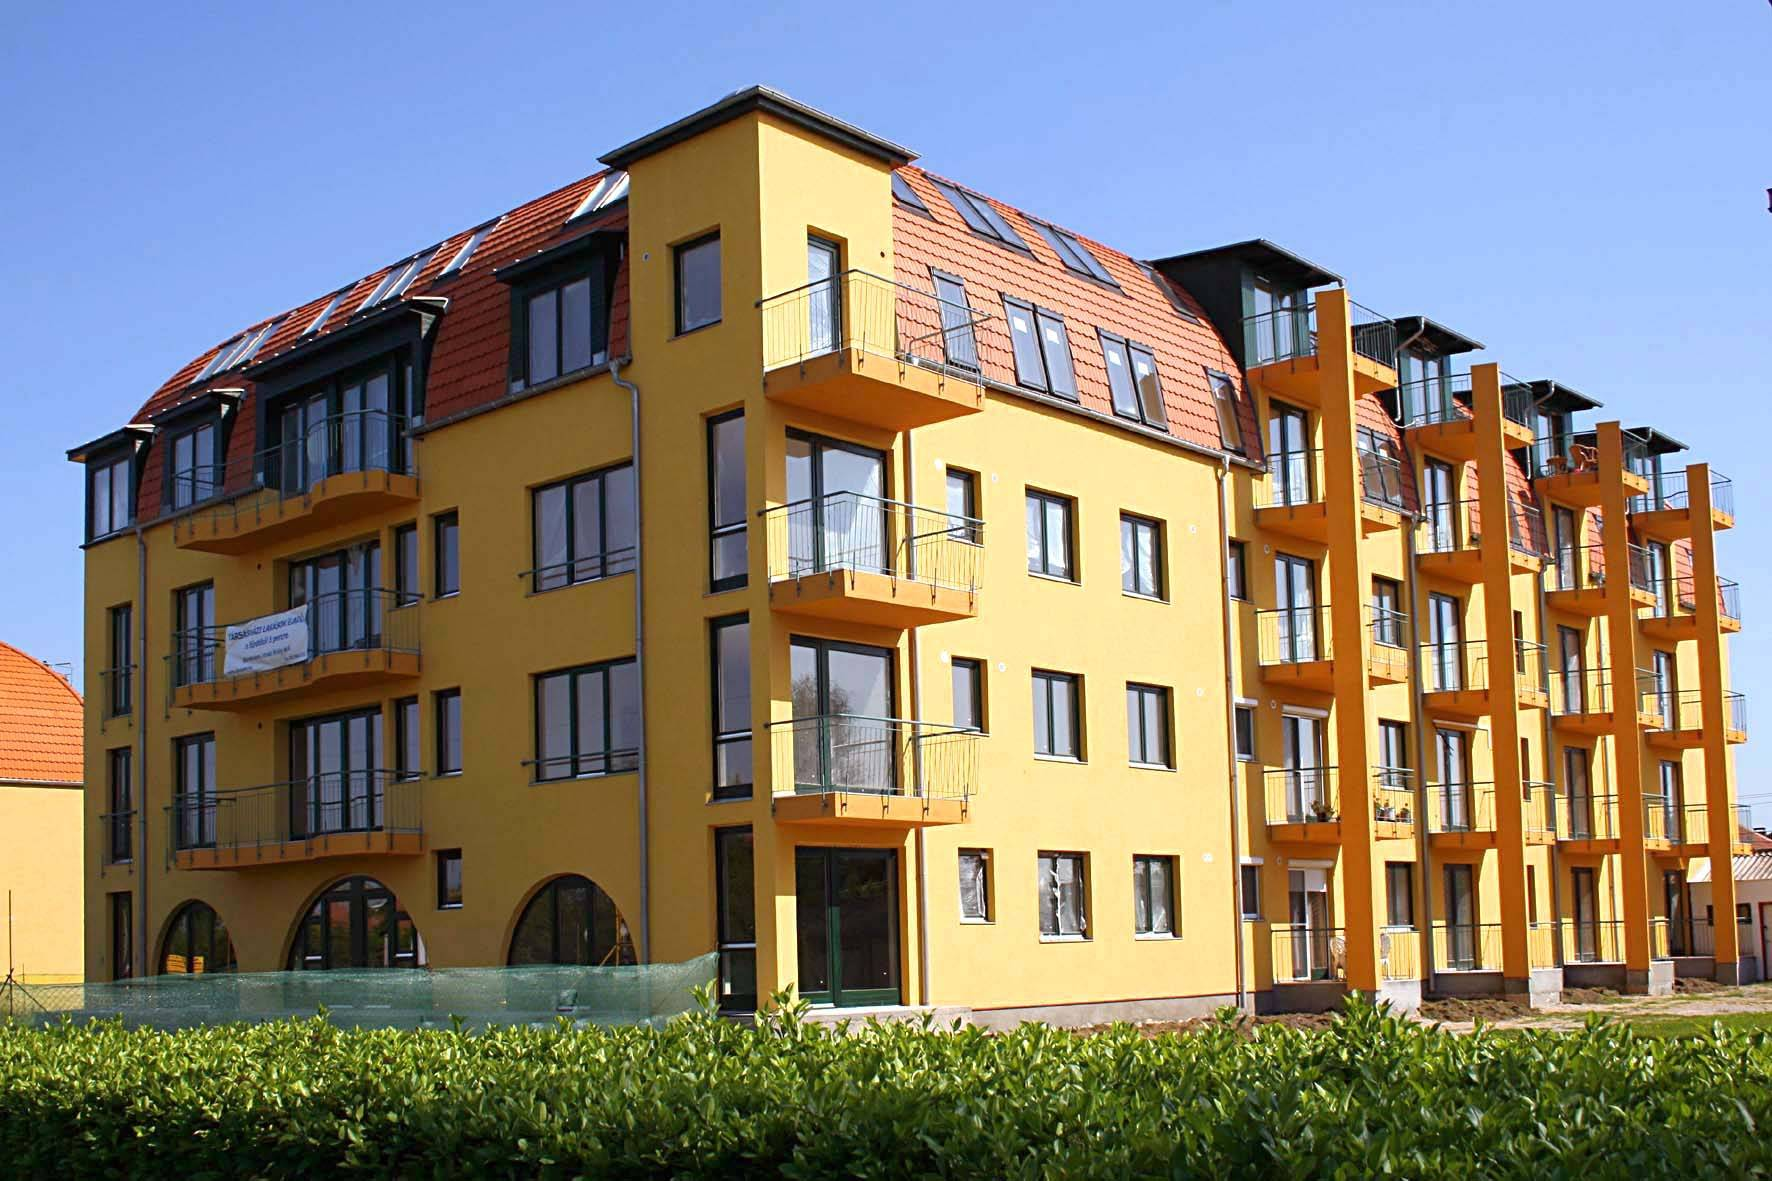 Udvarhz Apartman Mrahalom